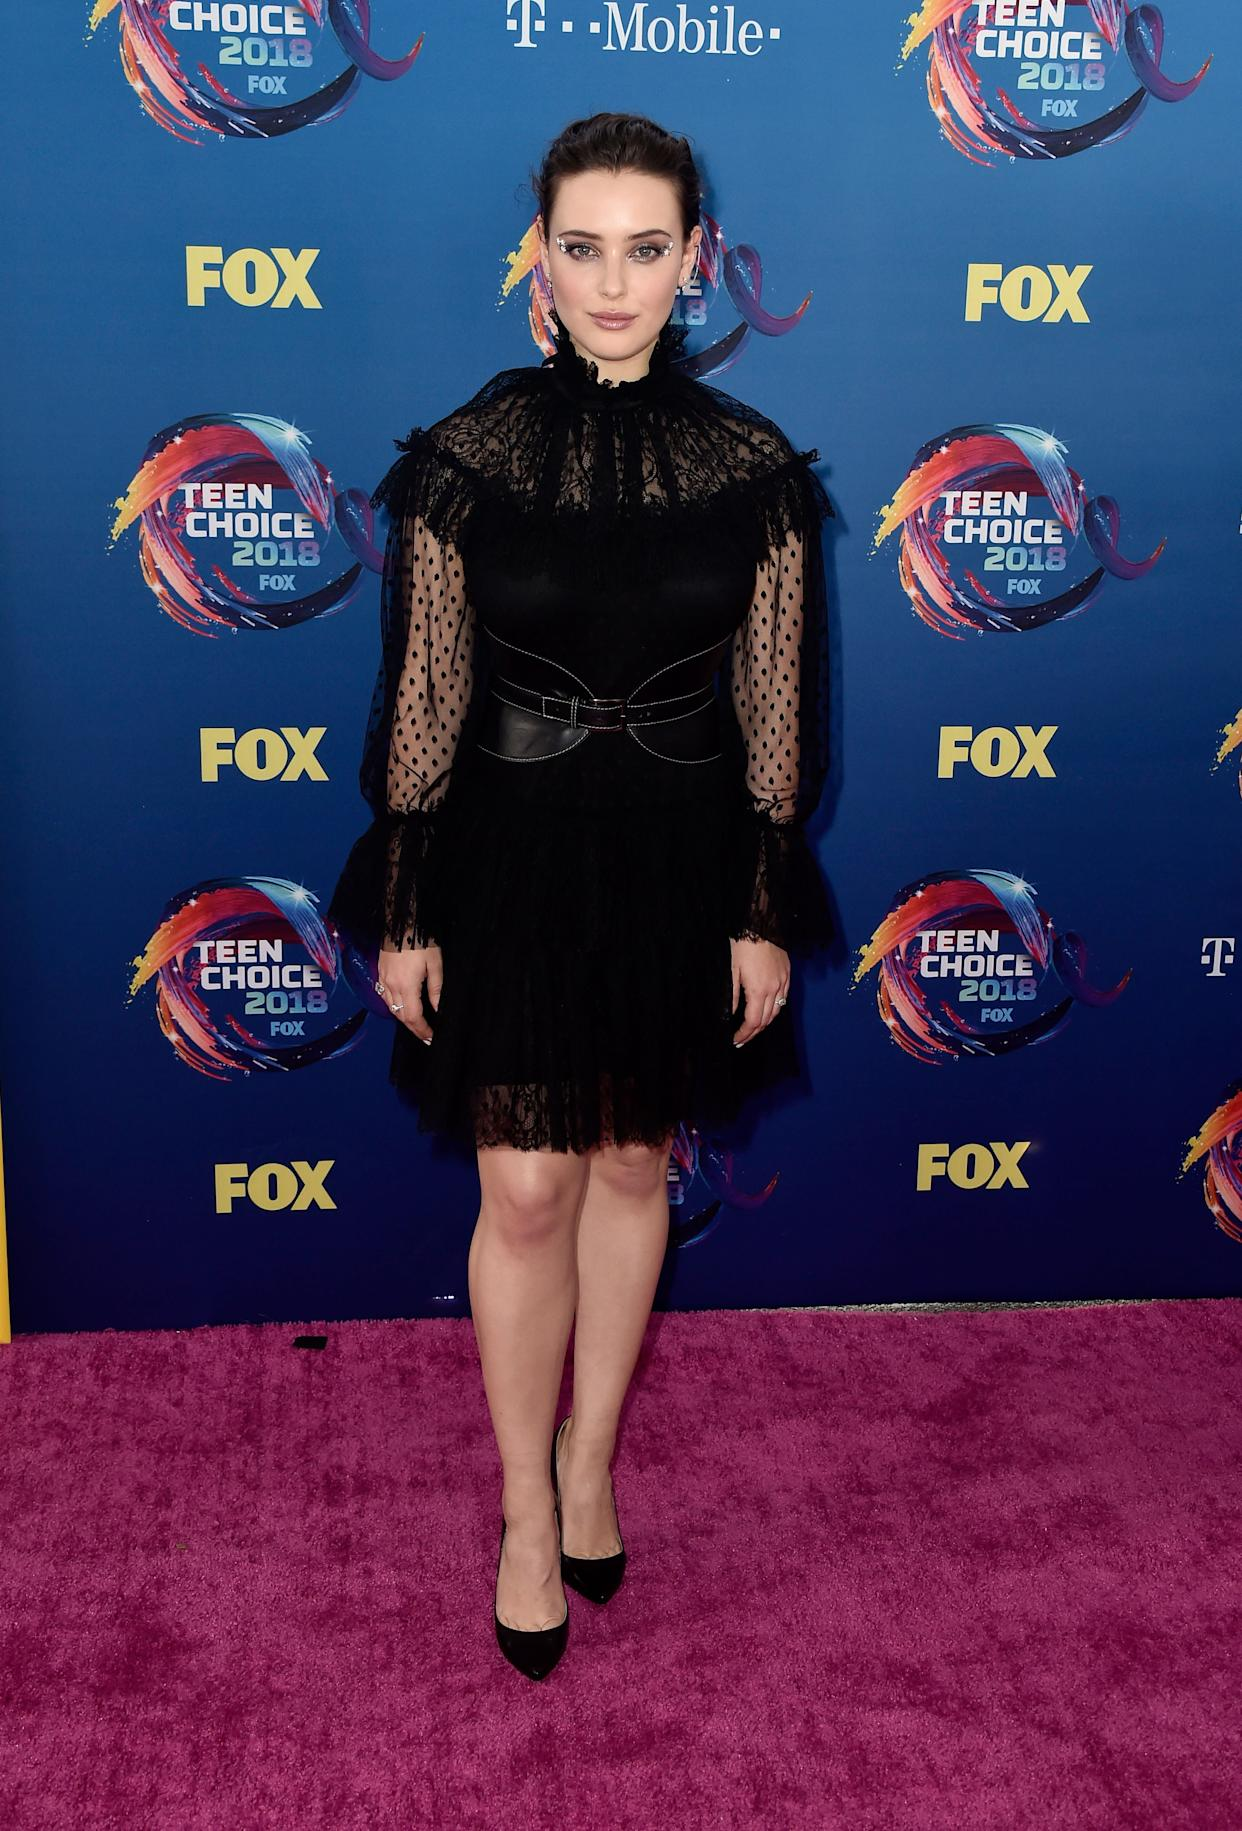 INGLEWOOD, CA - AUGUST 12: Katherine Langford attends FOX's Teen Choice Awards at The Forum on August 12, 2018 in Inglewood, California. (Photo by Frazer Harrison/Getty Images)